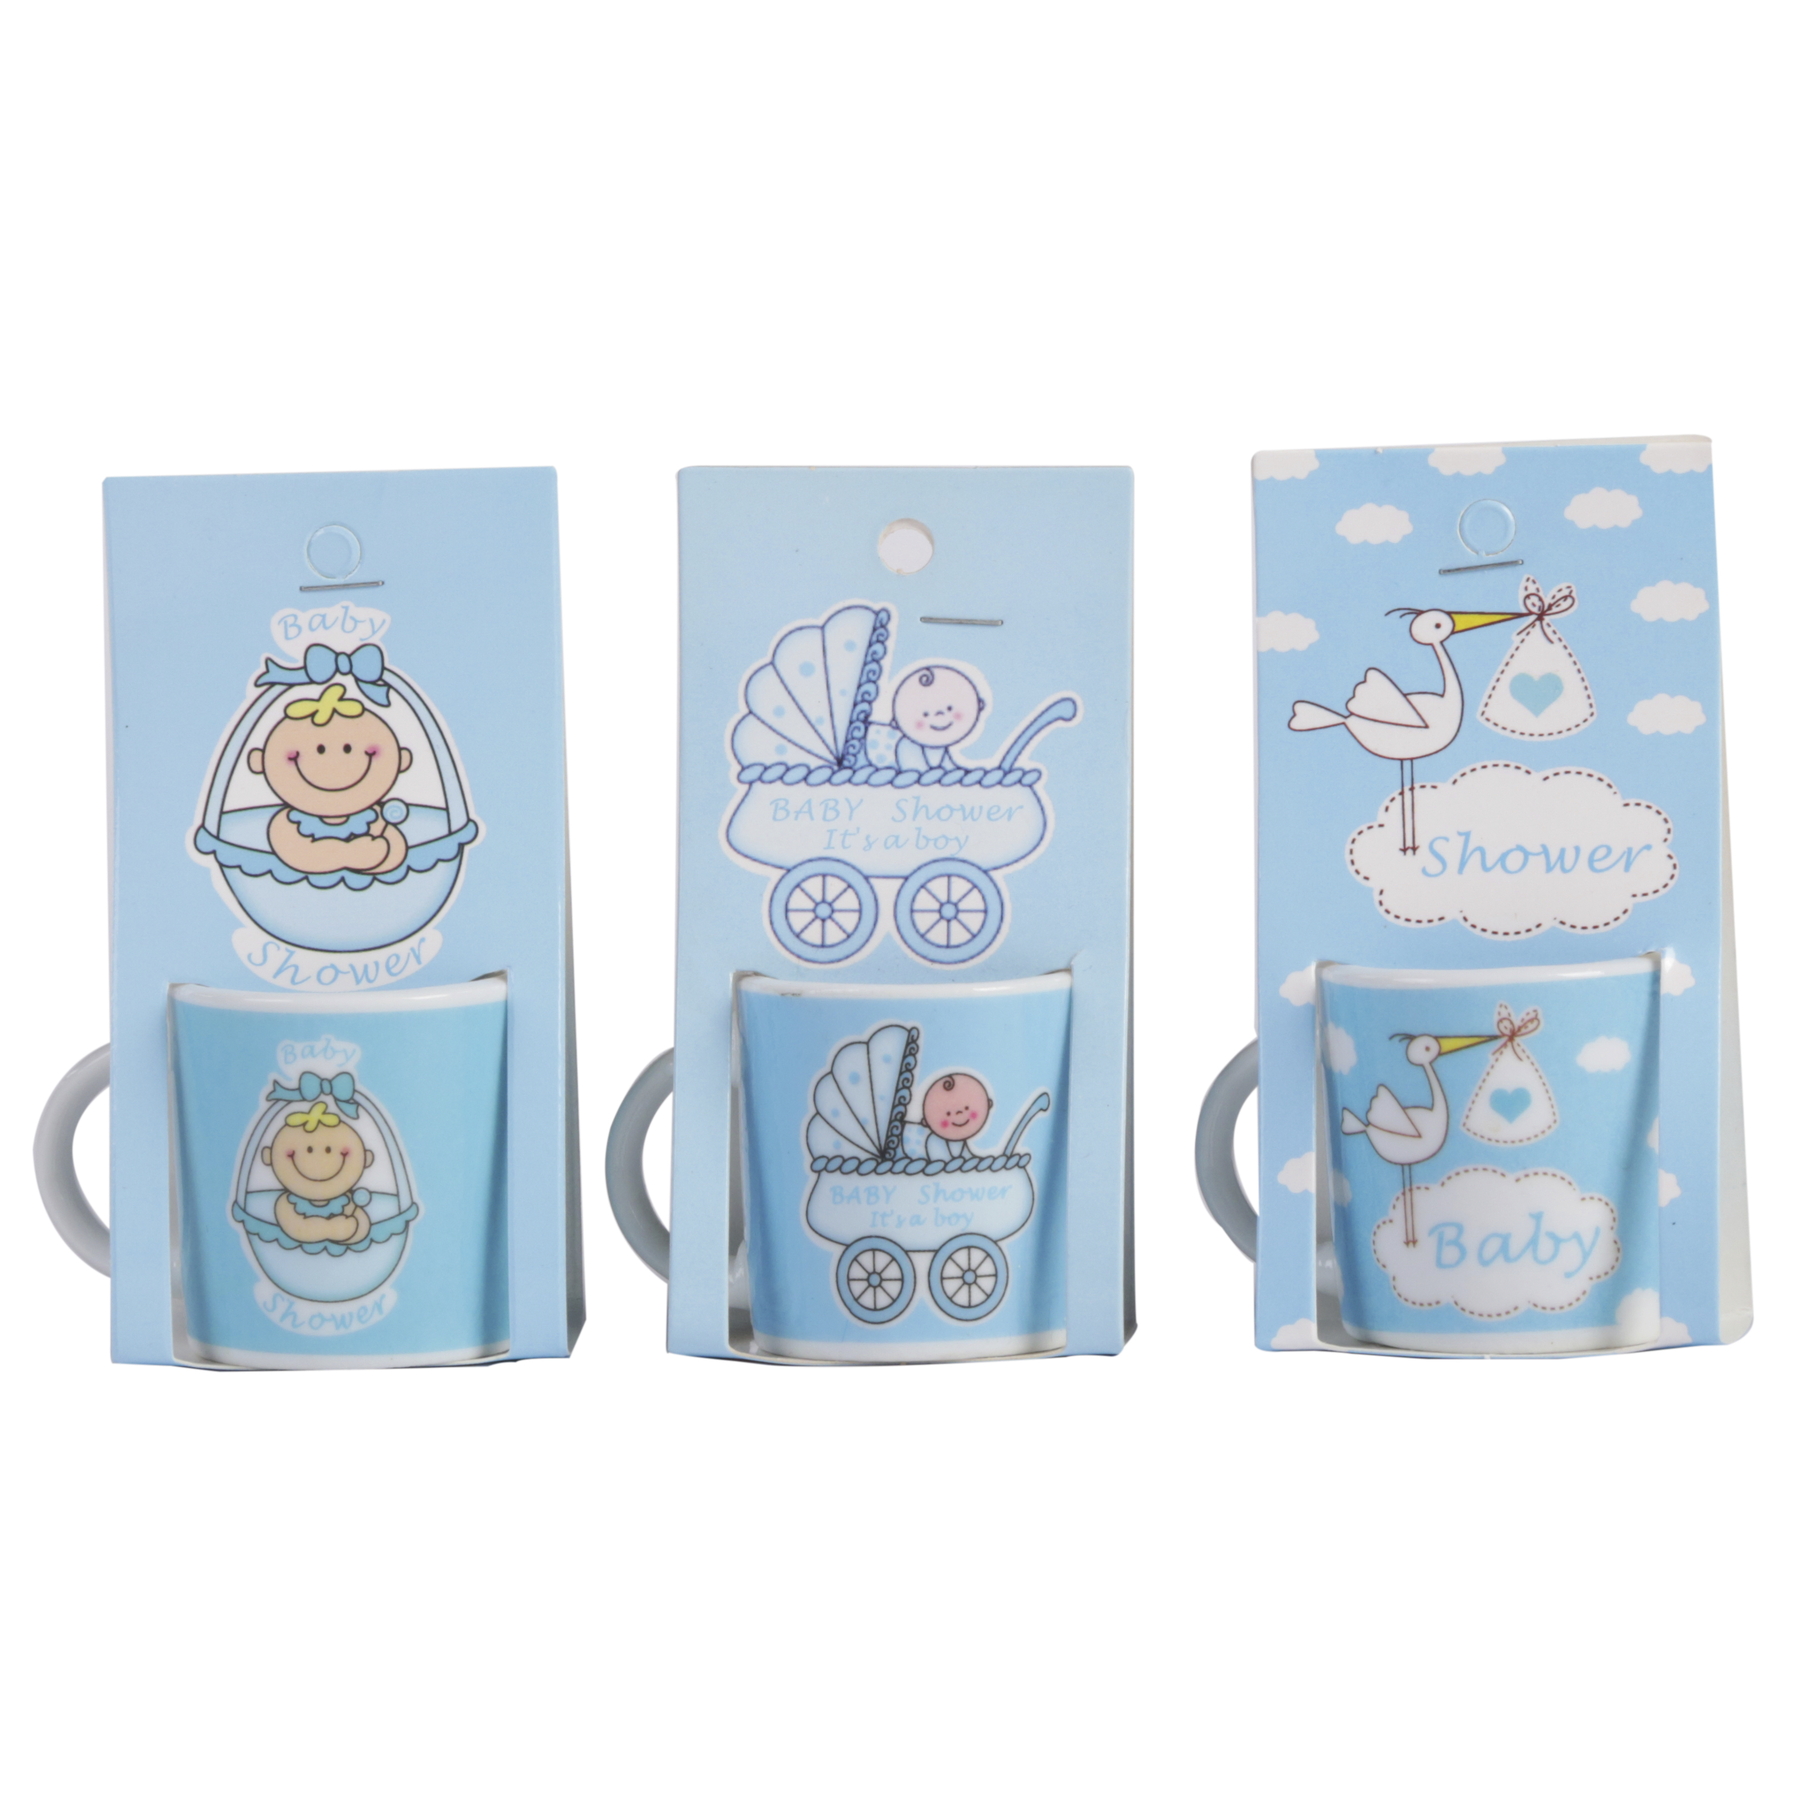 Lot Of 20 Cups Christening BLUE CHILD Small In Blister Gift-Details And Gifts For Memories Baptisms, Birthday